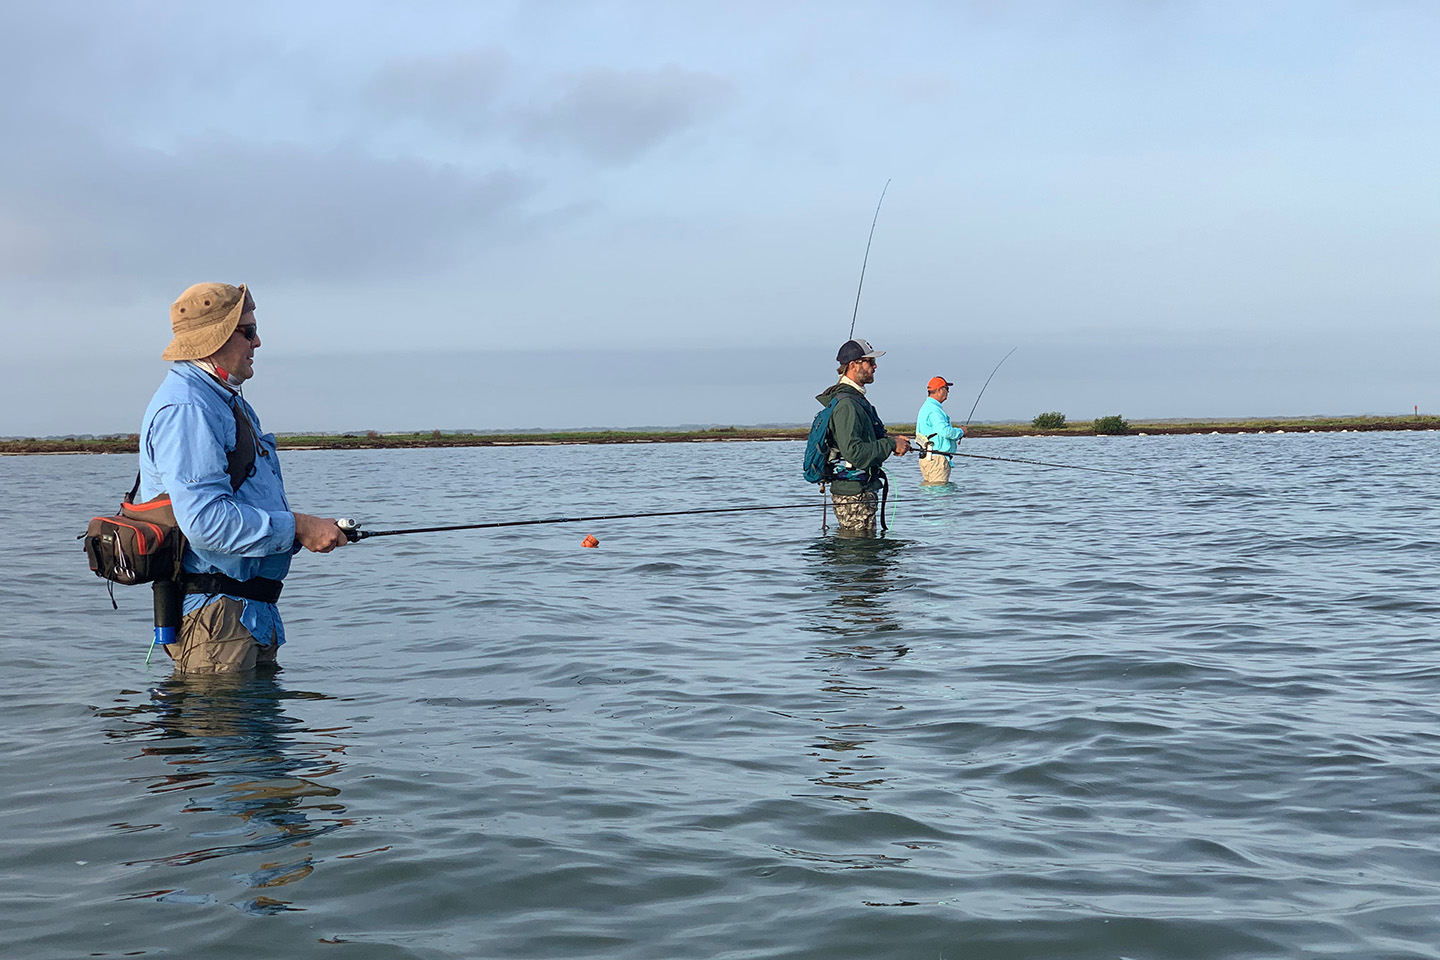 A group of anglers wade fishing in shallow sea water